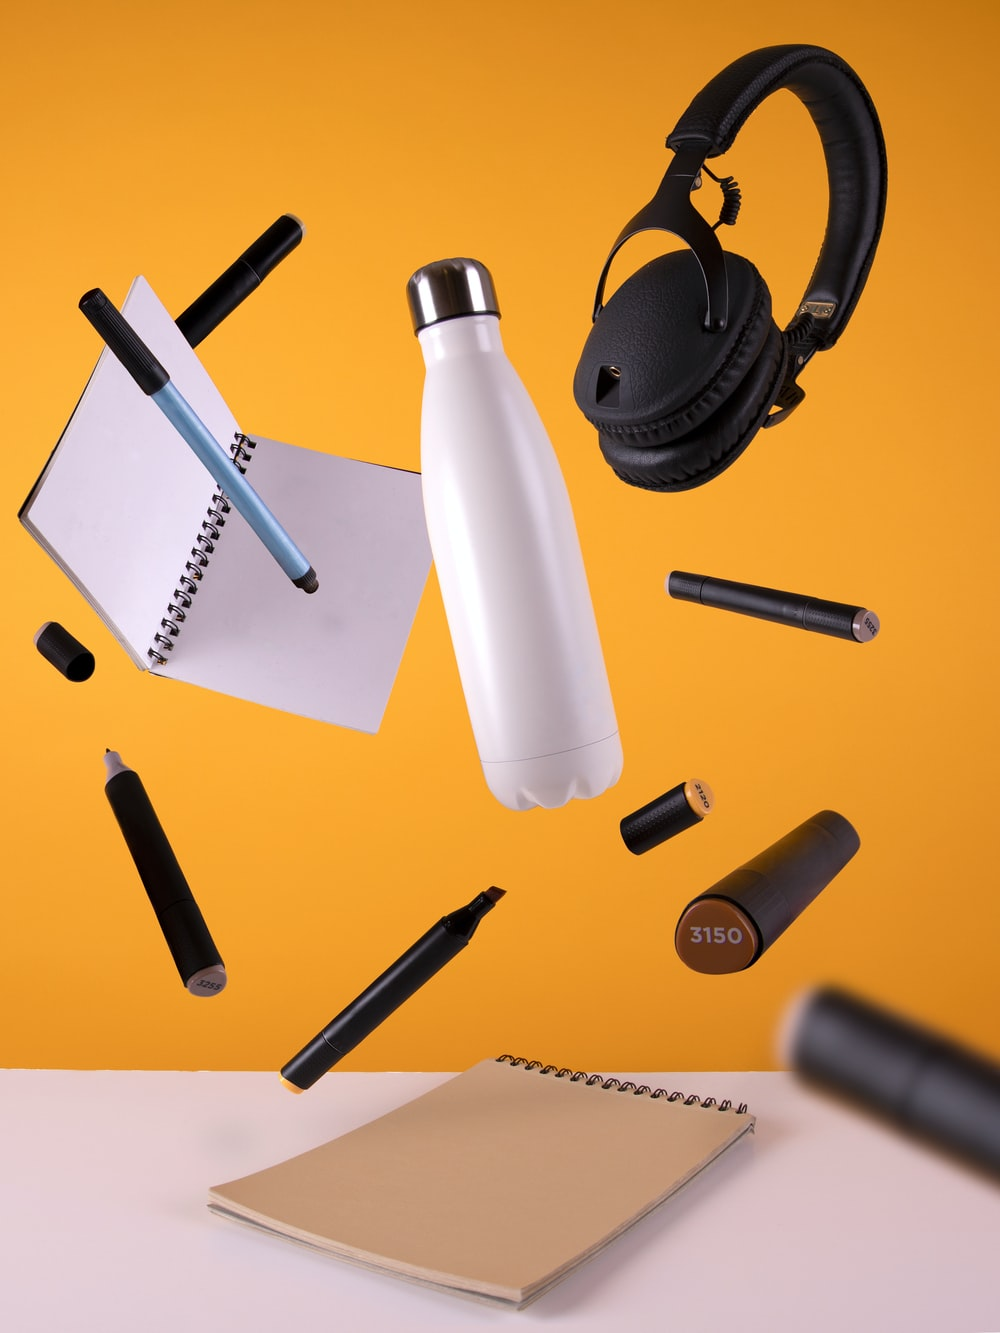 black cordless headphones beside sport bottle and notebook